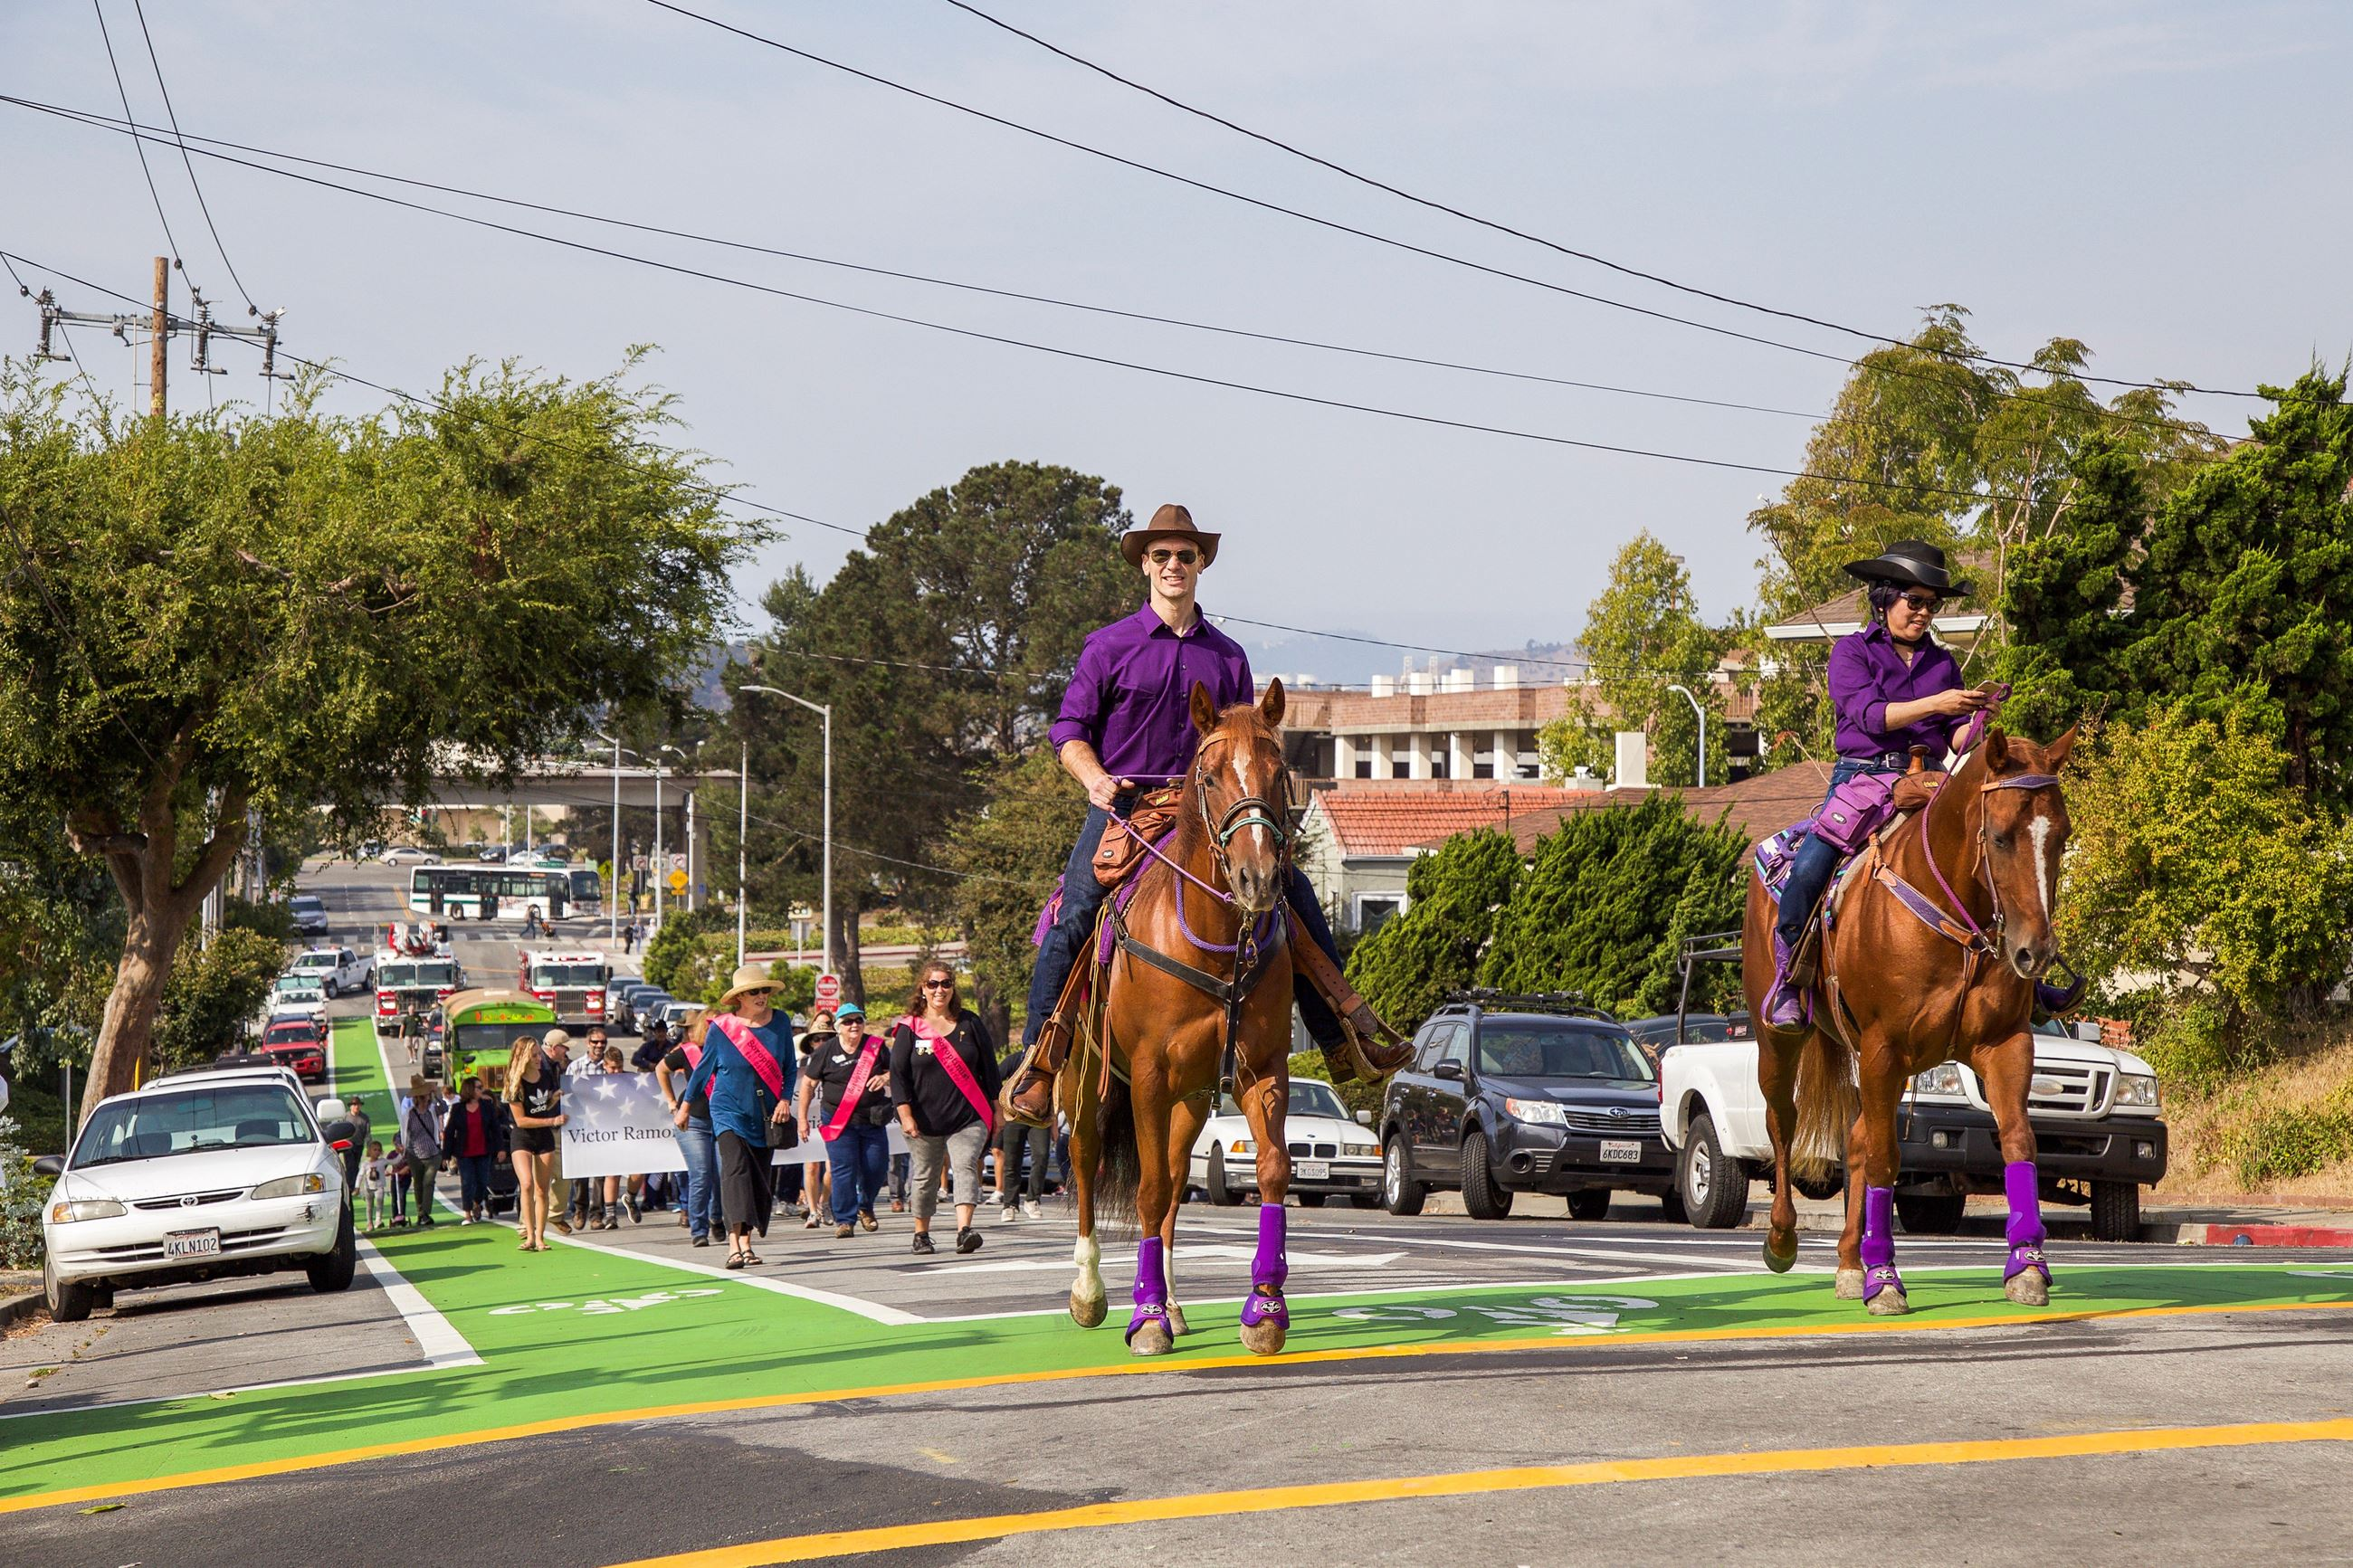 282 Soroptimist Horses in Parade 1 - Photo by Marin Stuart